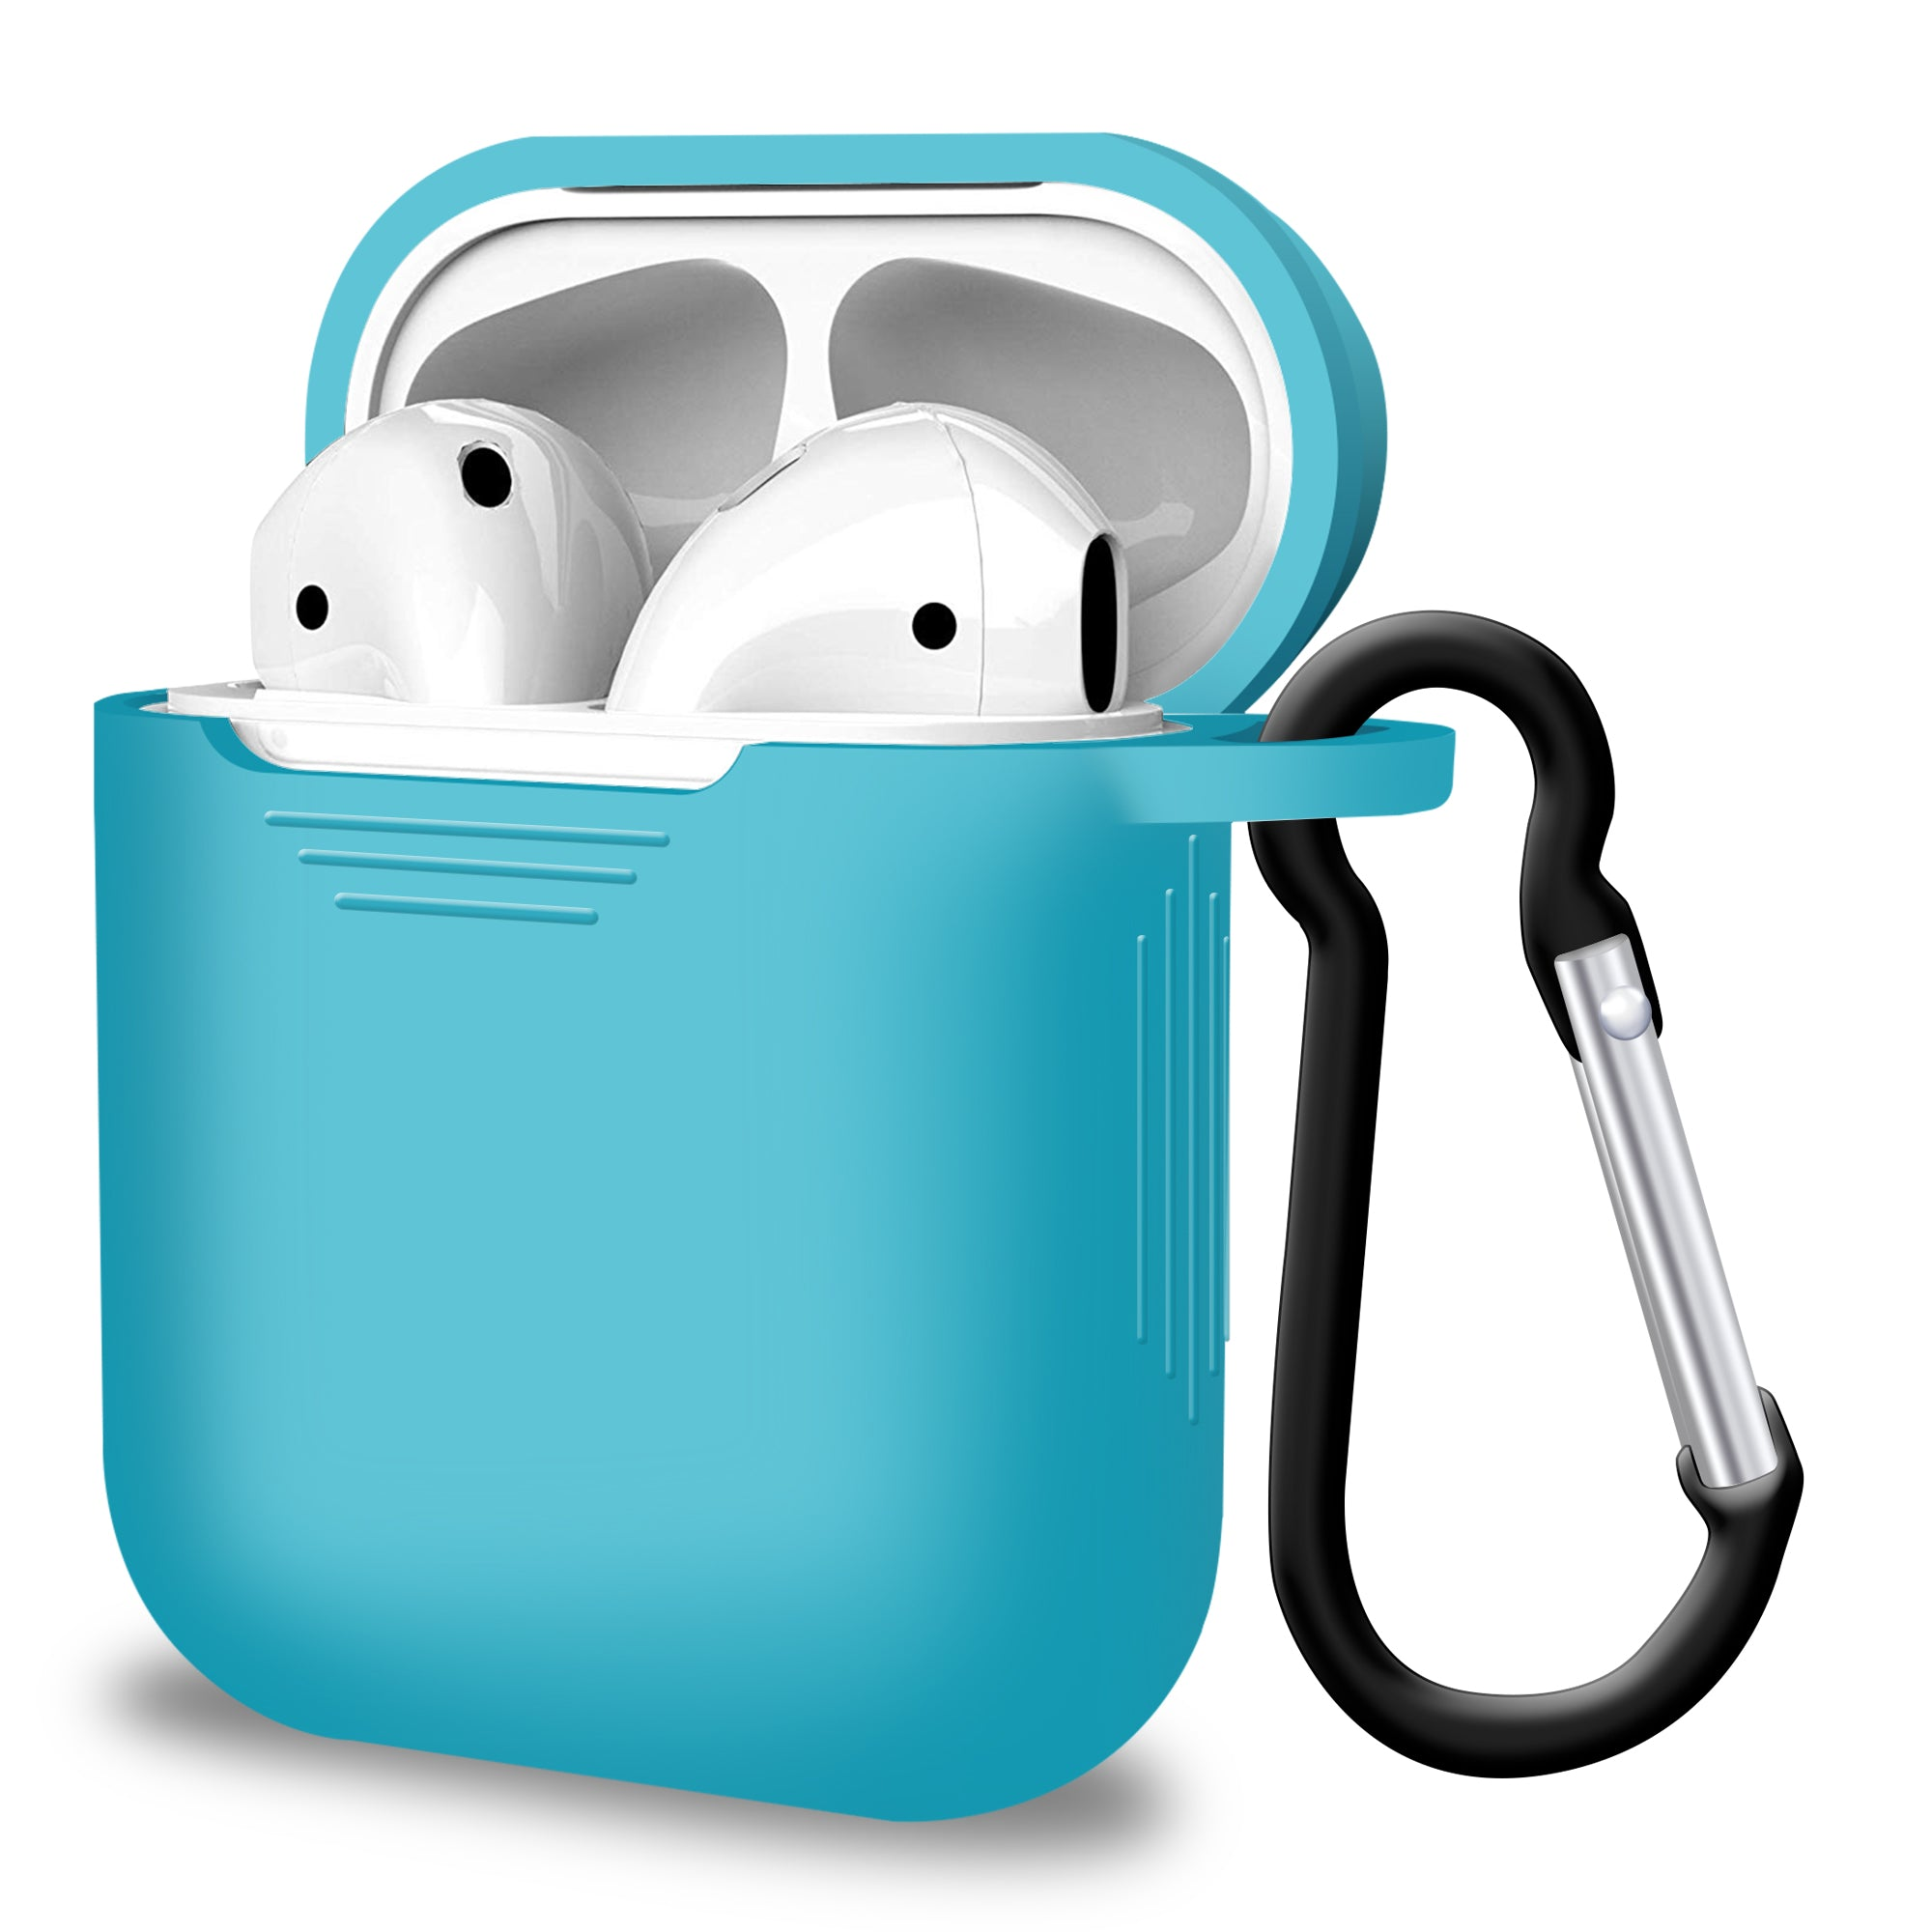 2 in 1 Apple Airpods Silicone Case Earphone Charge Skin Cover Sky Blue by  TradeNRG